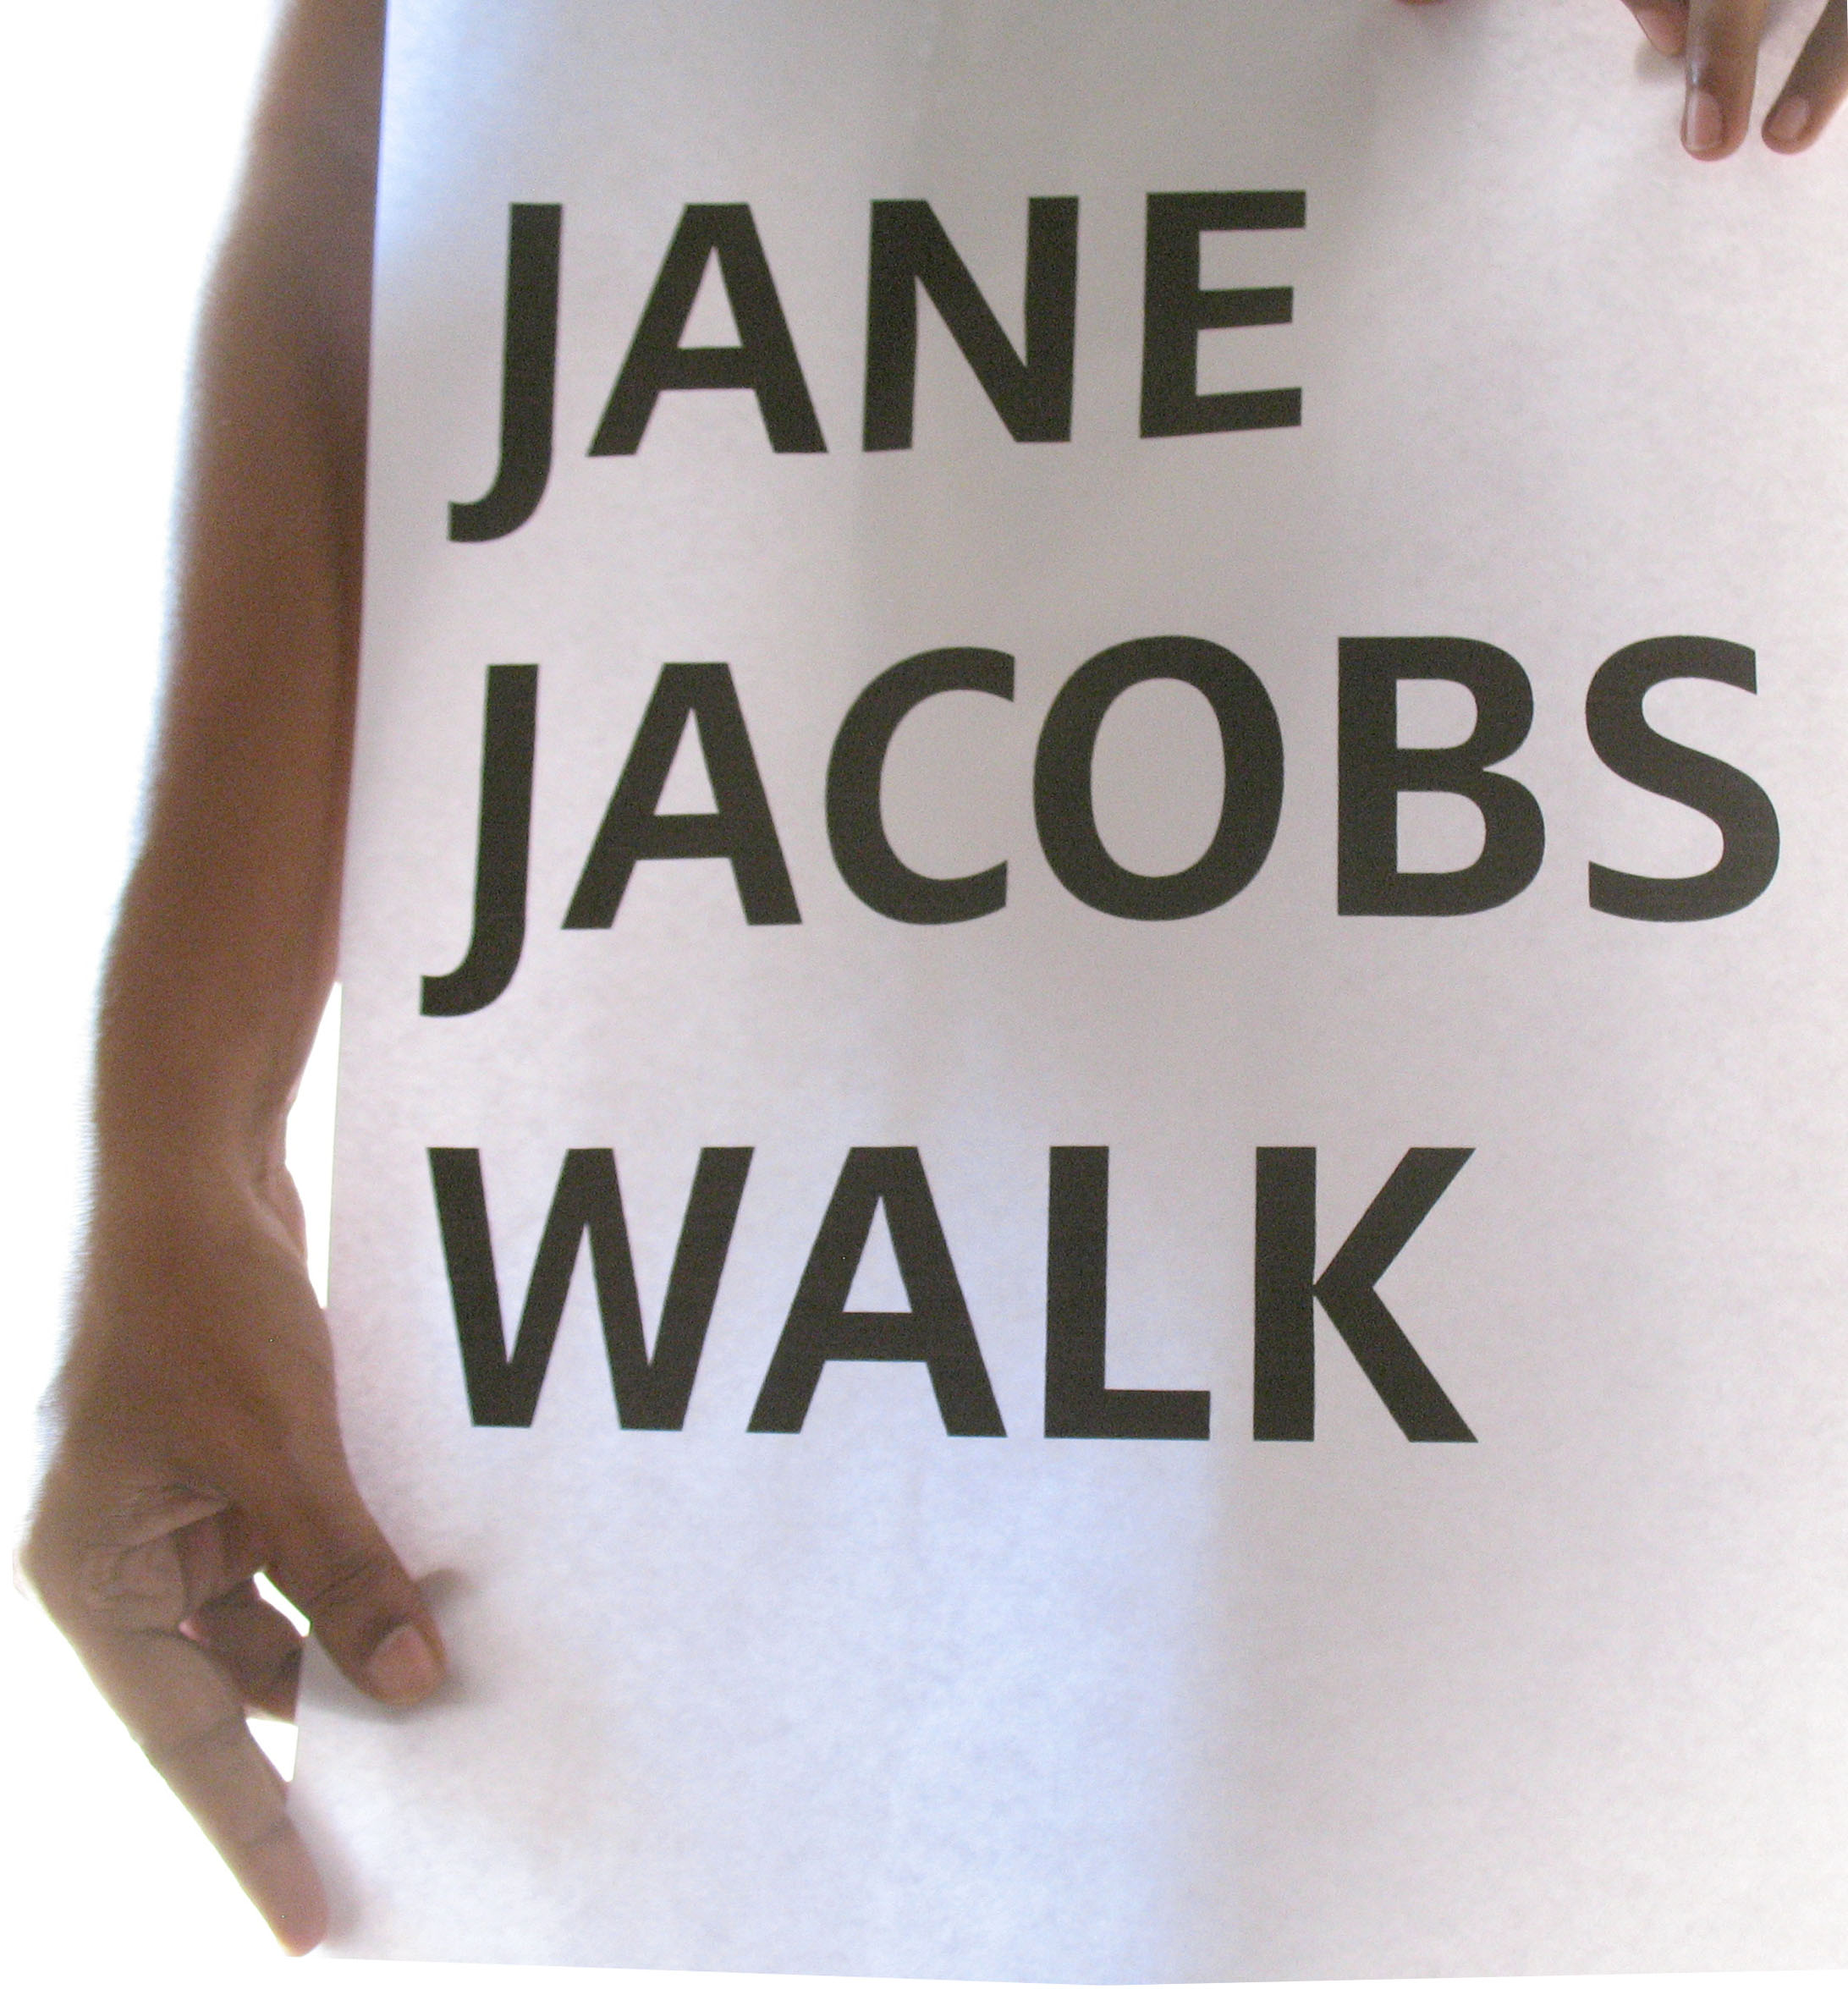 Jane Jacobs walk!